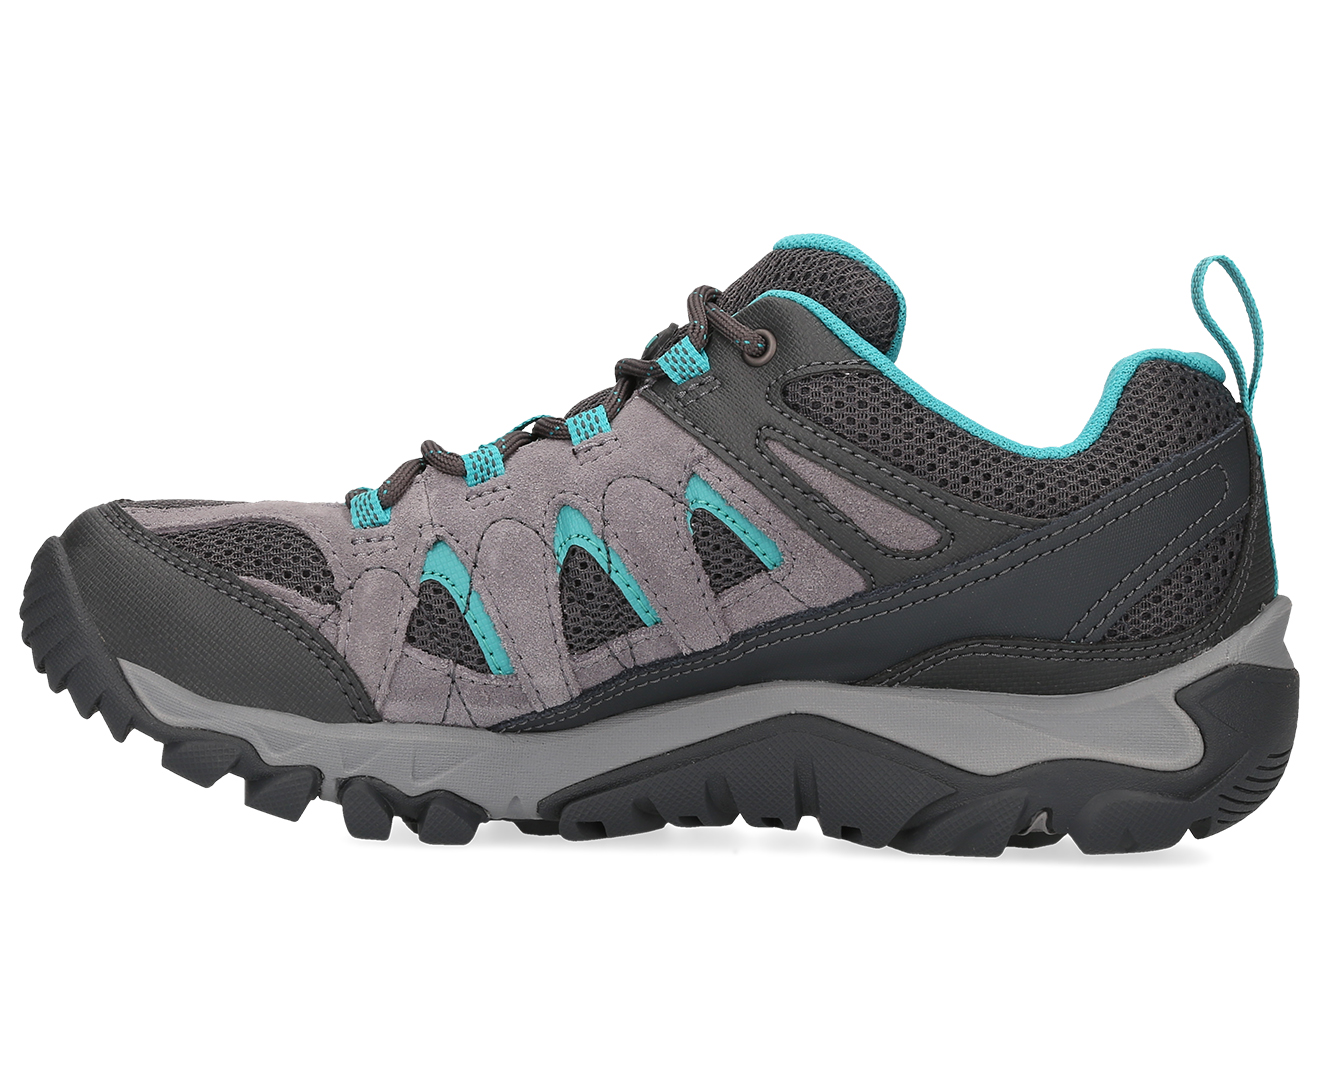 6a1a73e0dc5 Merrell Women's Outmost Ventilator Shoe - Frost Grey